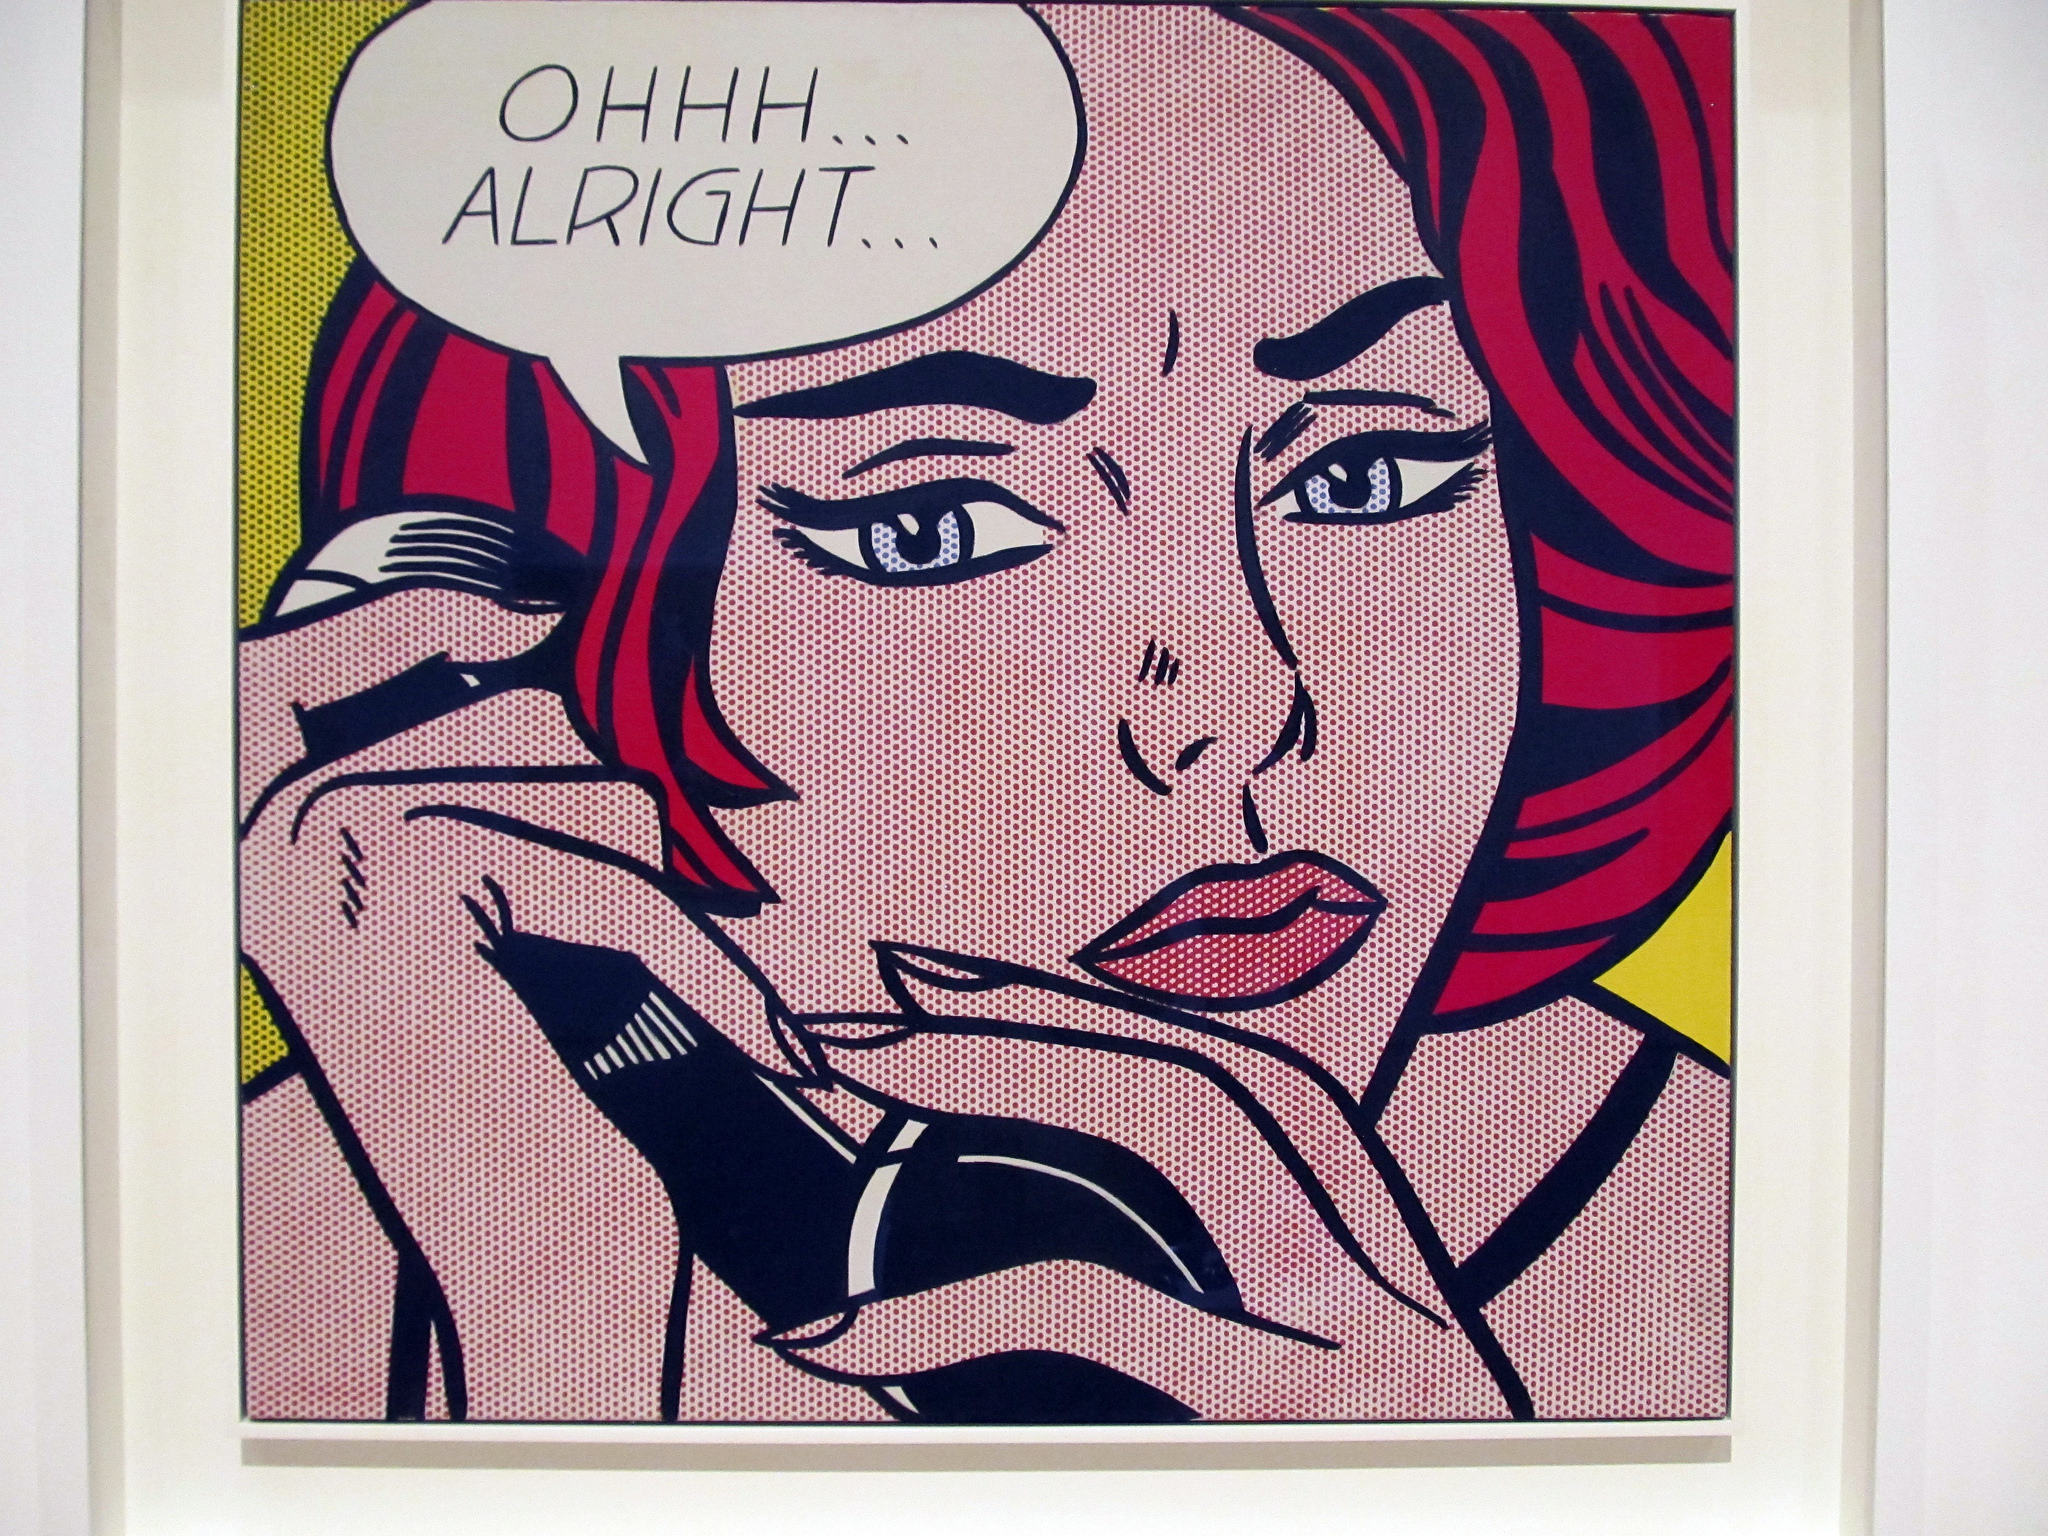 Ohh...Alright  (1964) by Roy Lichtenstein.  Photo by daryl_mitchell  /  CC BY 2.0 .